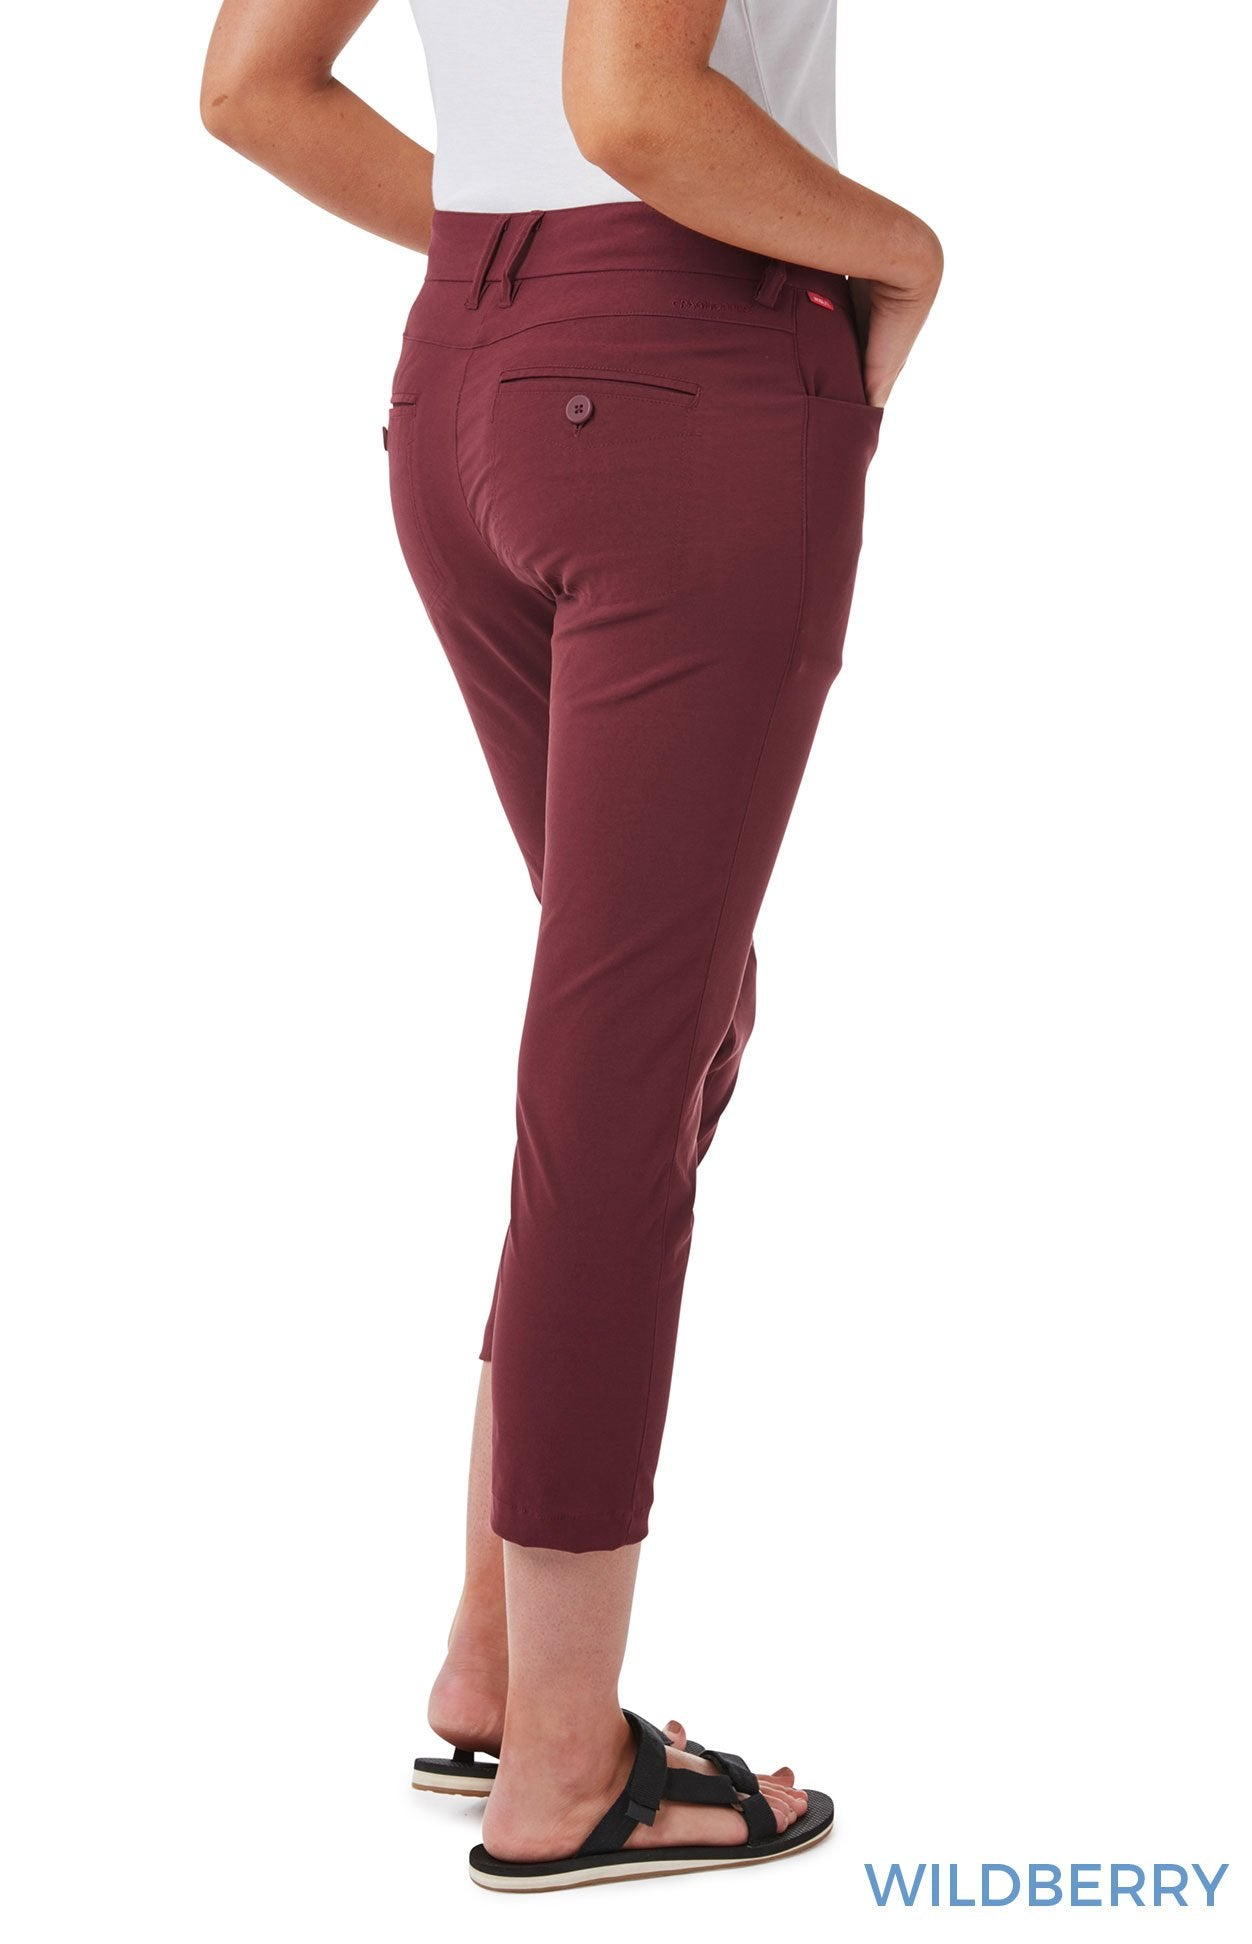 Rear Wildberry Ladies Clara NosiLife Crop Pants by Craghoppers